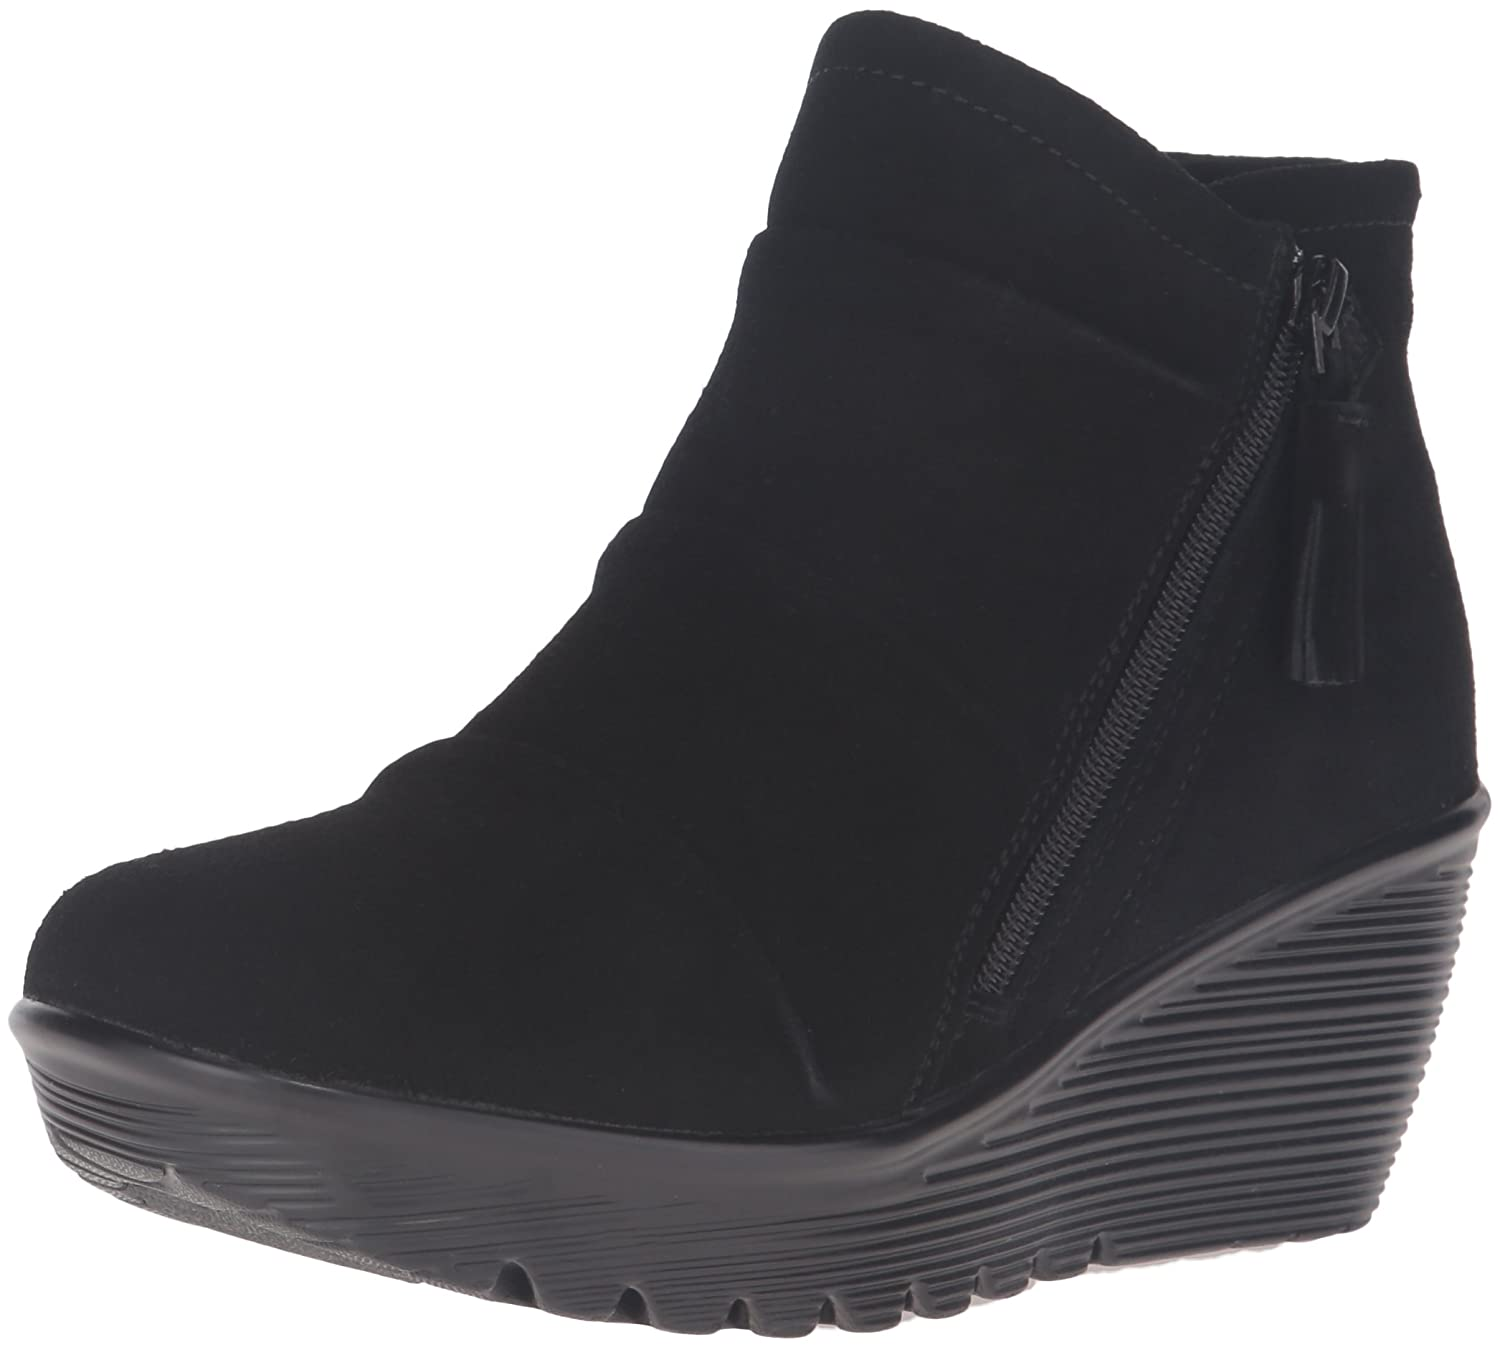 Skechers Womens Parallel-Triple Threat Ankle Bootie  7.5 B(M) US|Black Suede